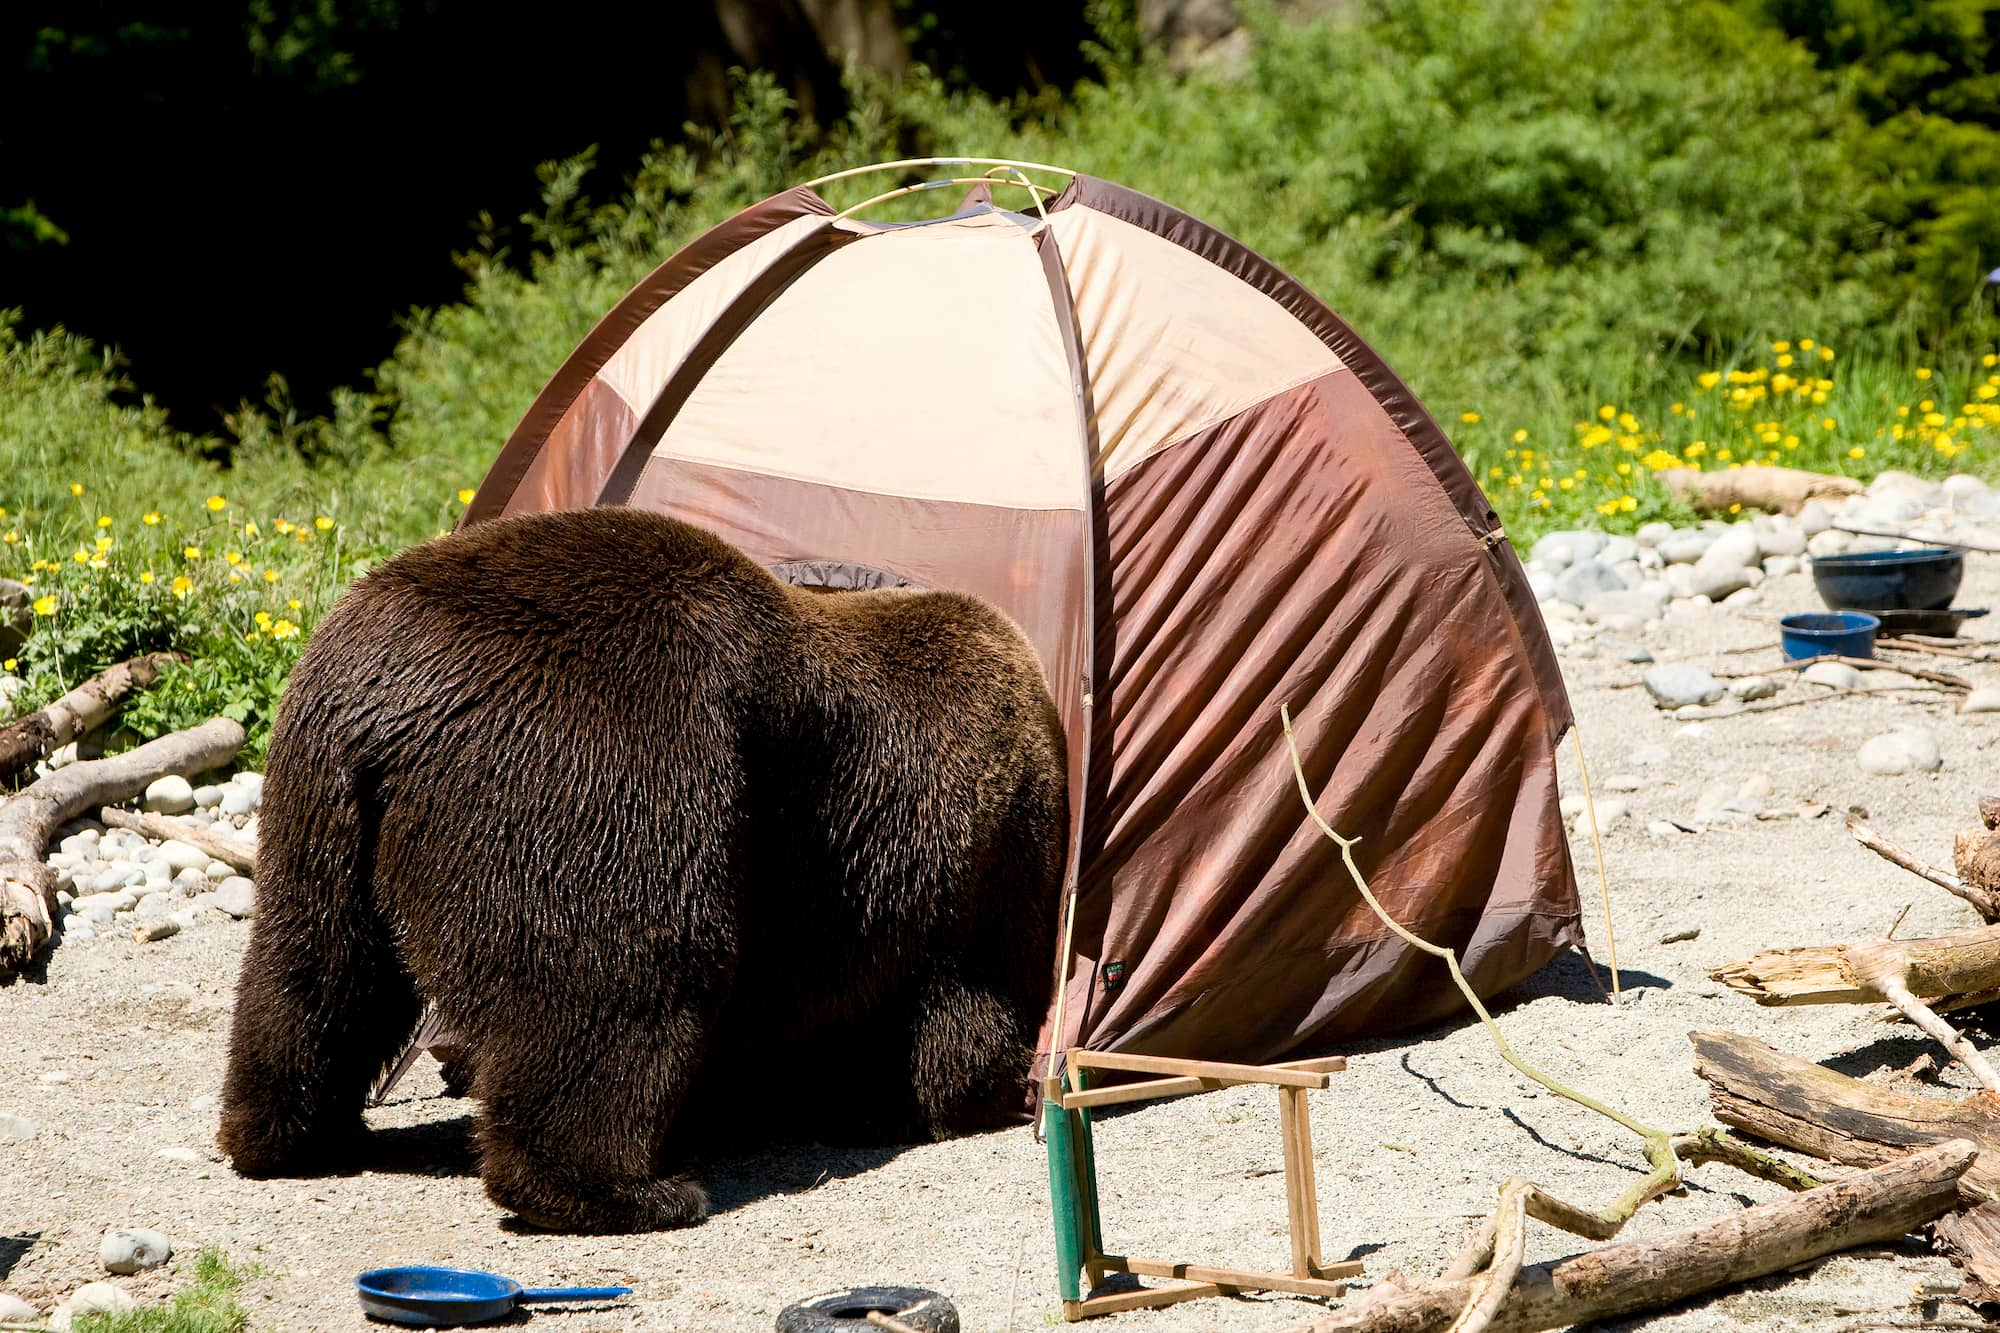 25 Ridiculous Camping Fails from Real Campers Just Like You